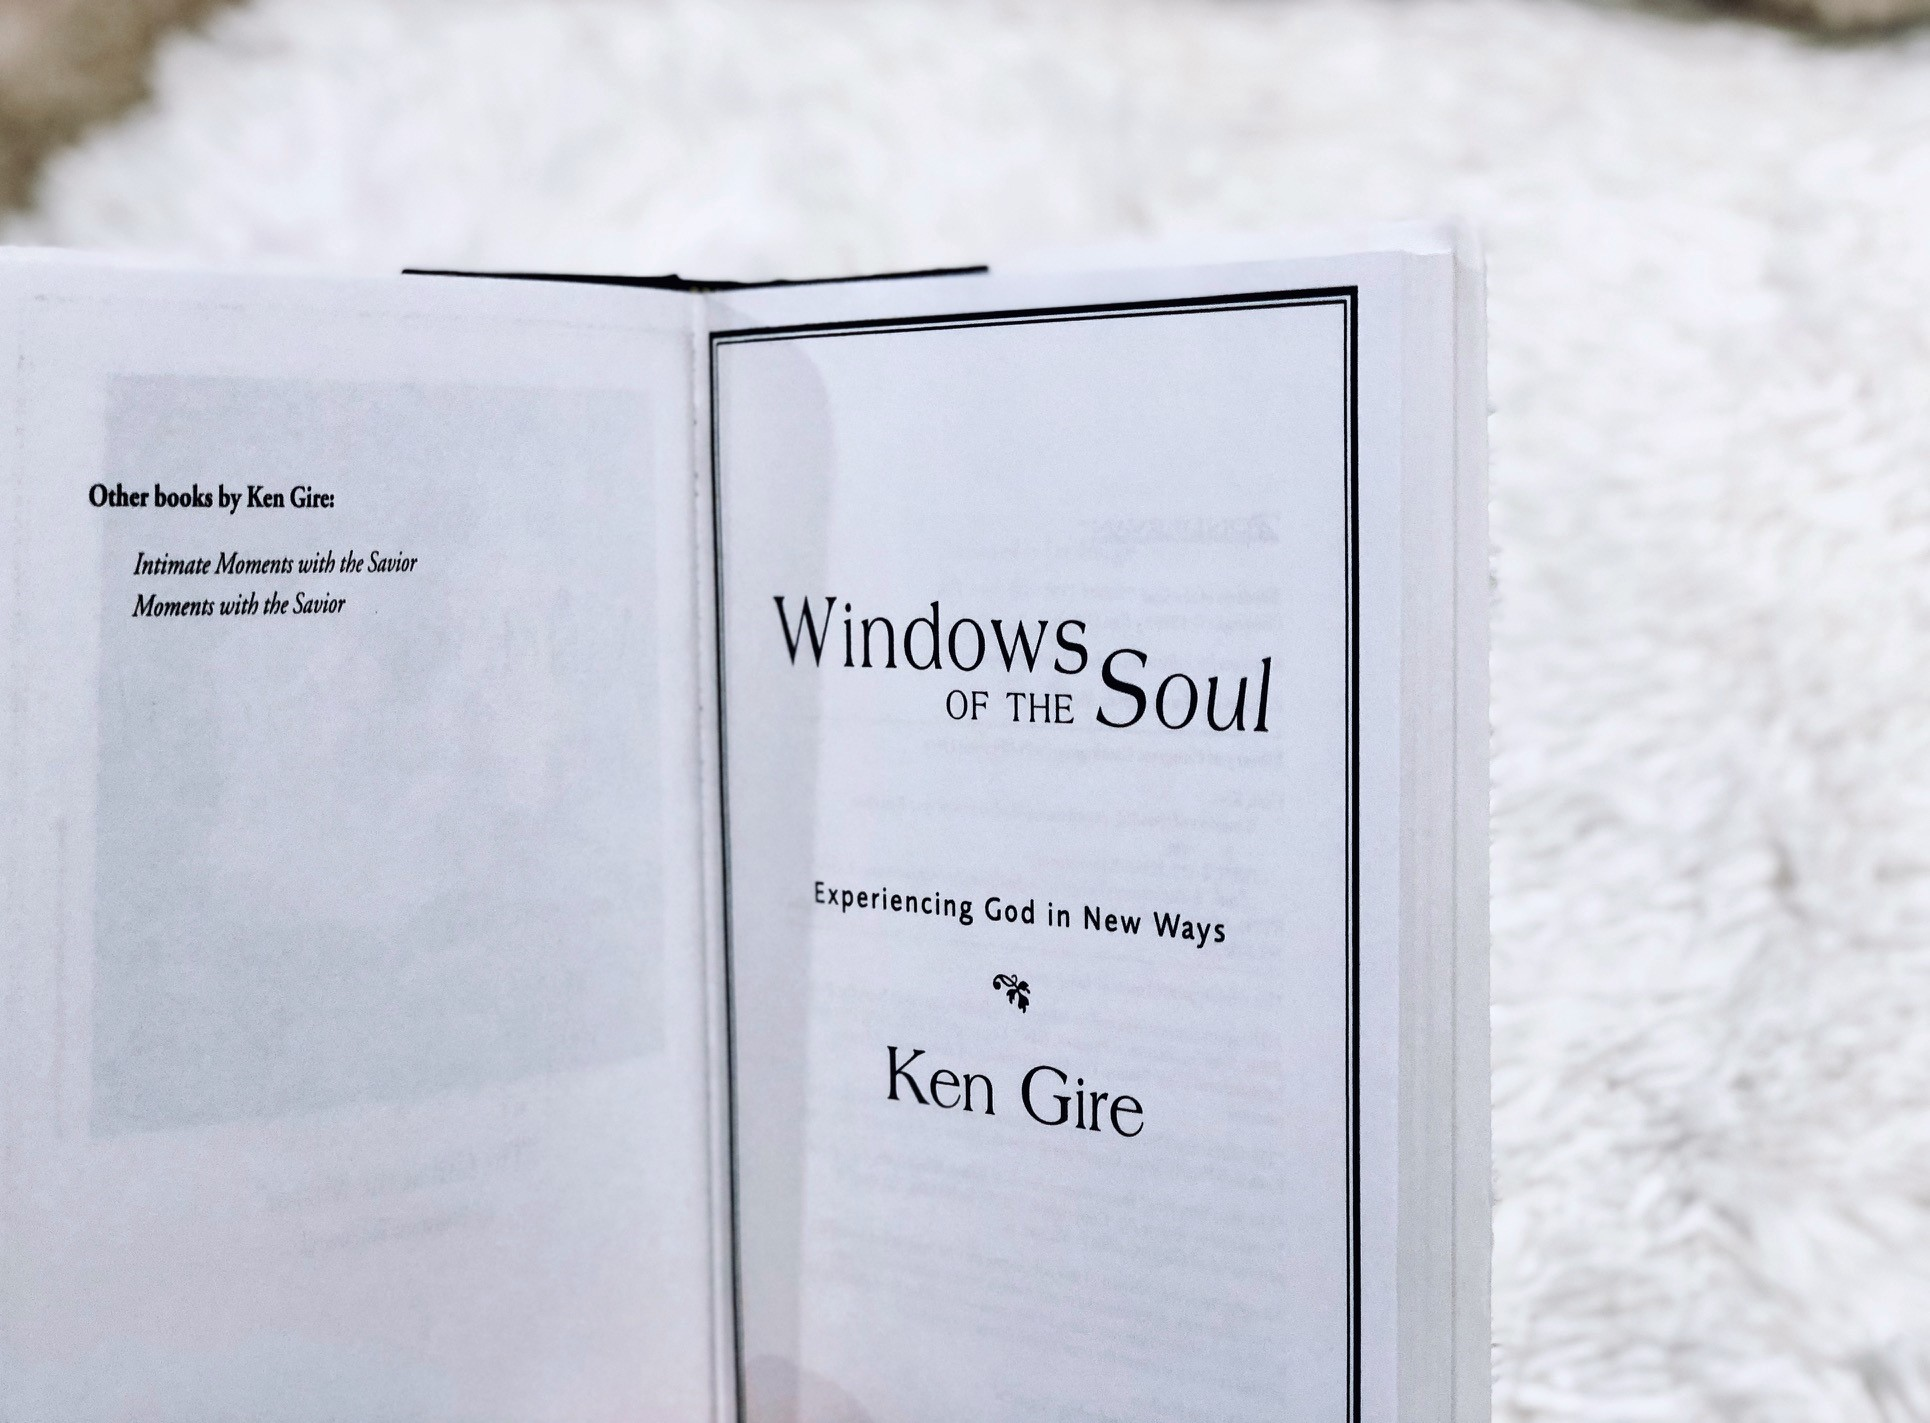 Windows of the Soul: Experiencing God in New Ways by Ken Gire